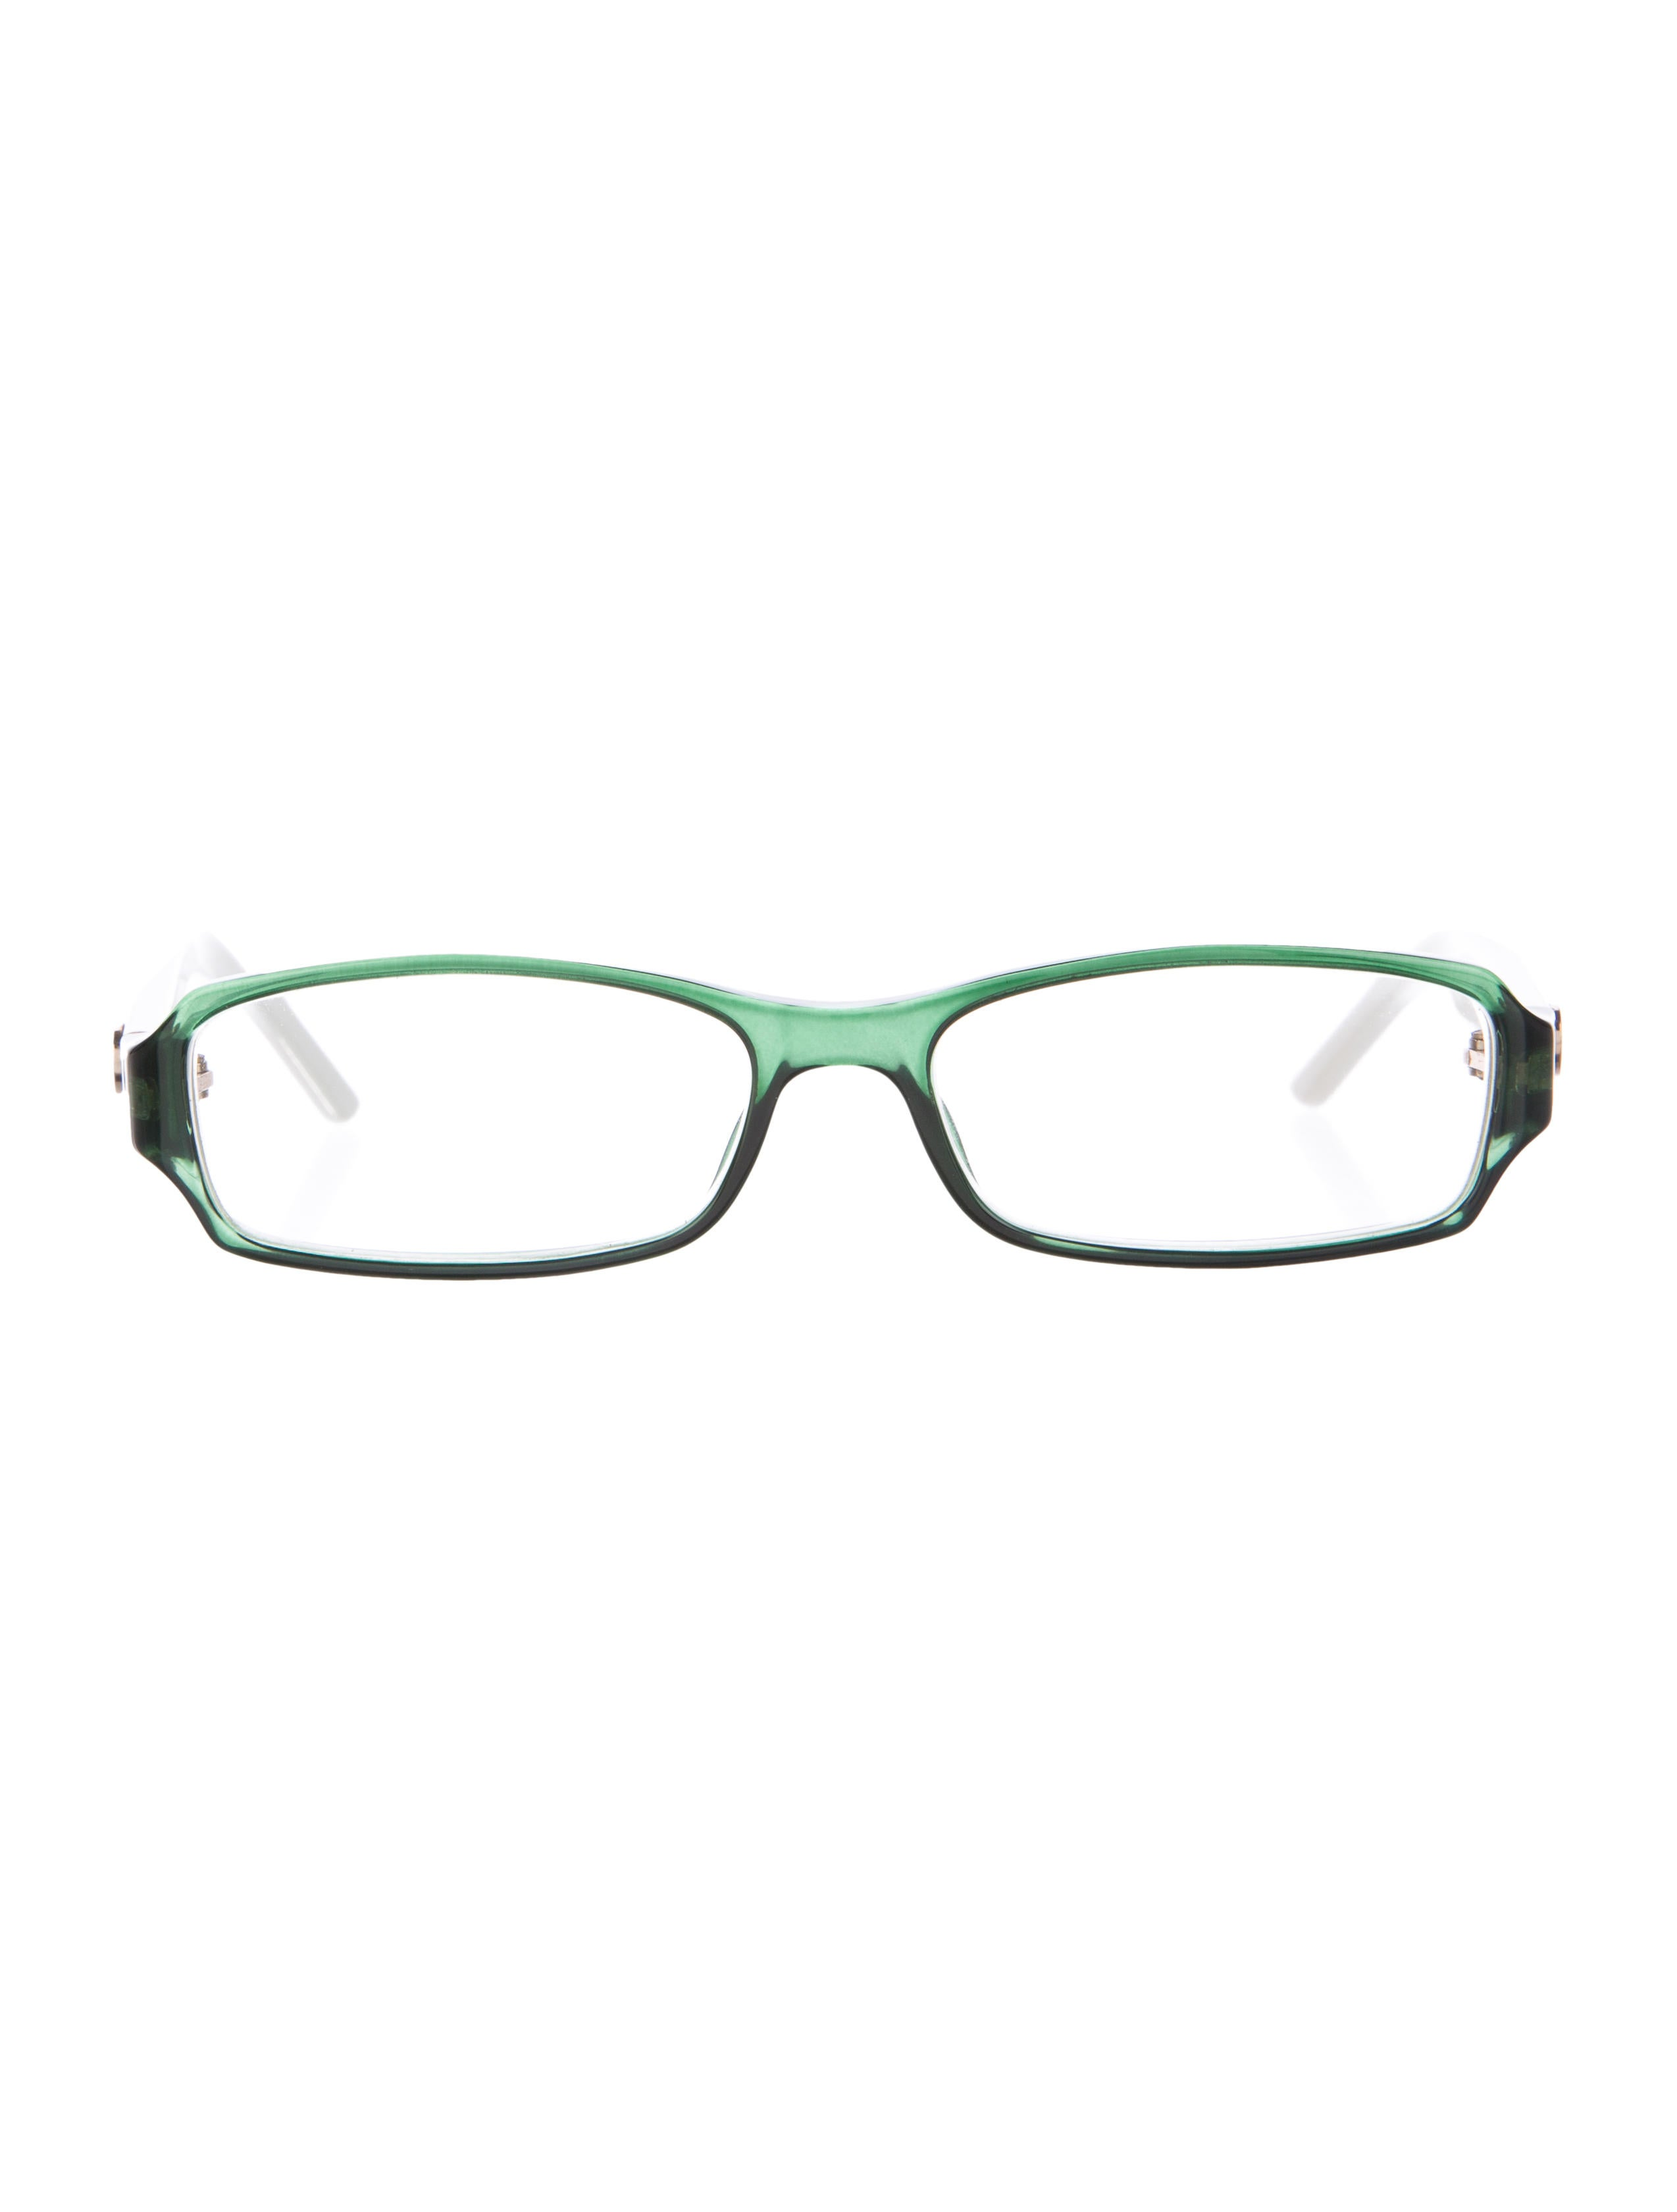 Eyeglass Frames Websites : Gucci GG Web Eyeglasses - Accessories - GUC140911 The ...